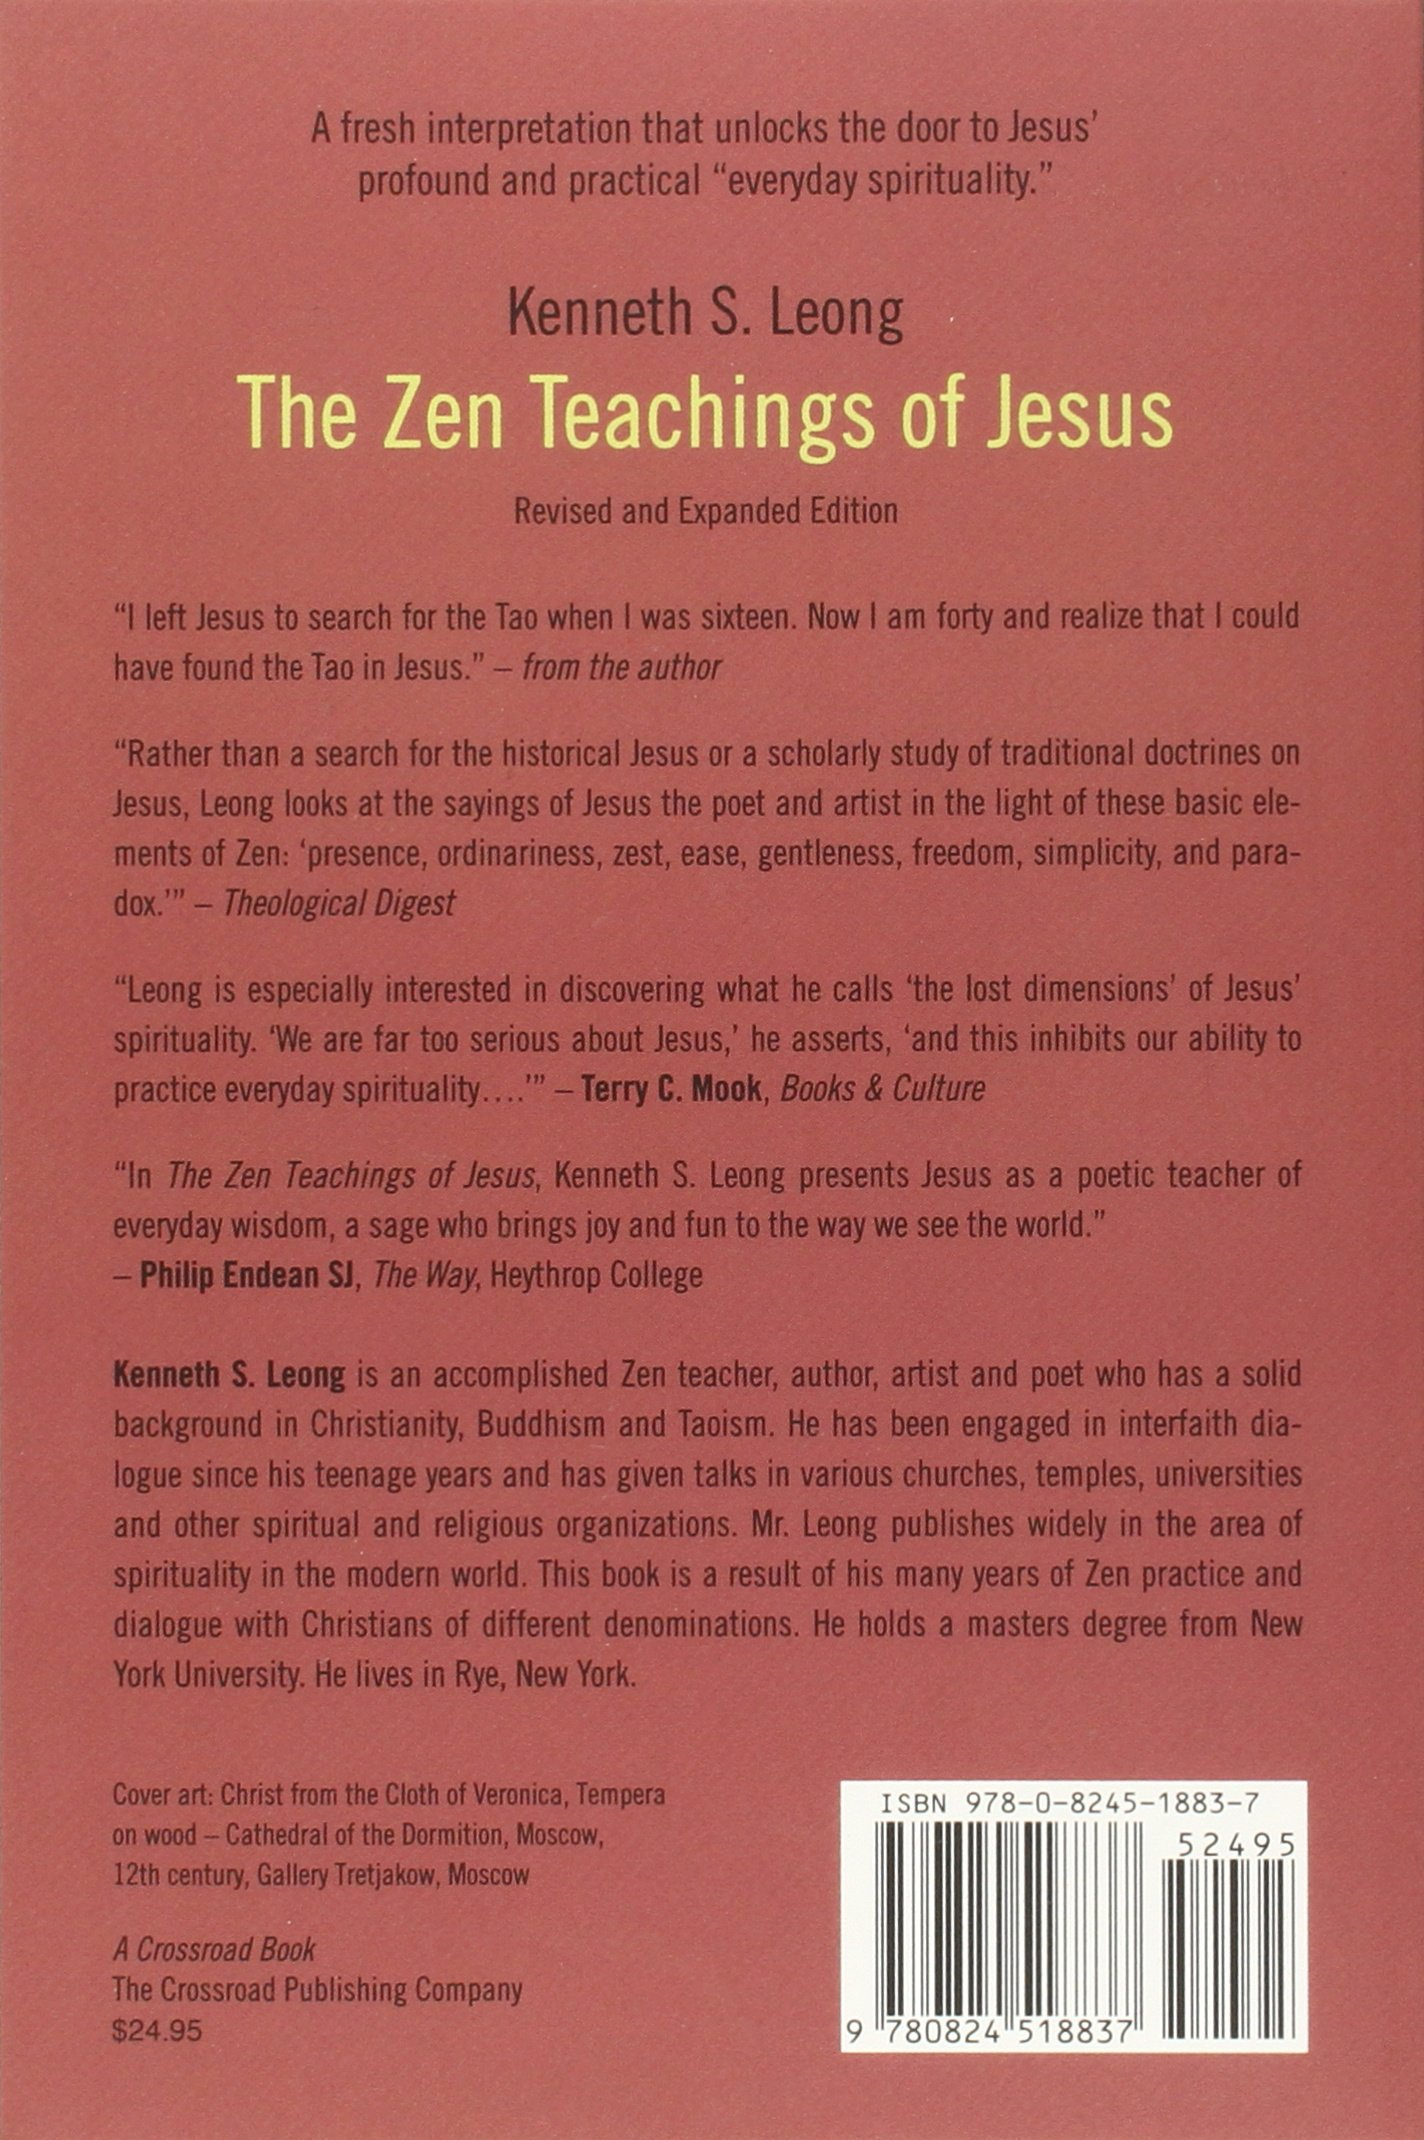 Amazon.com: The Zen Teachings of Jesus (9780824518837): Kenneth S. Leong:  Books